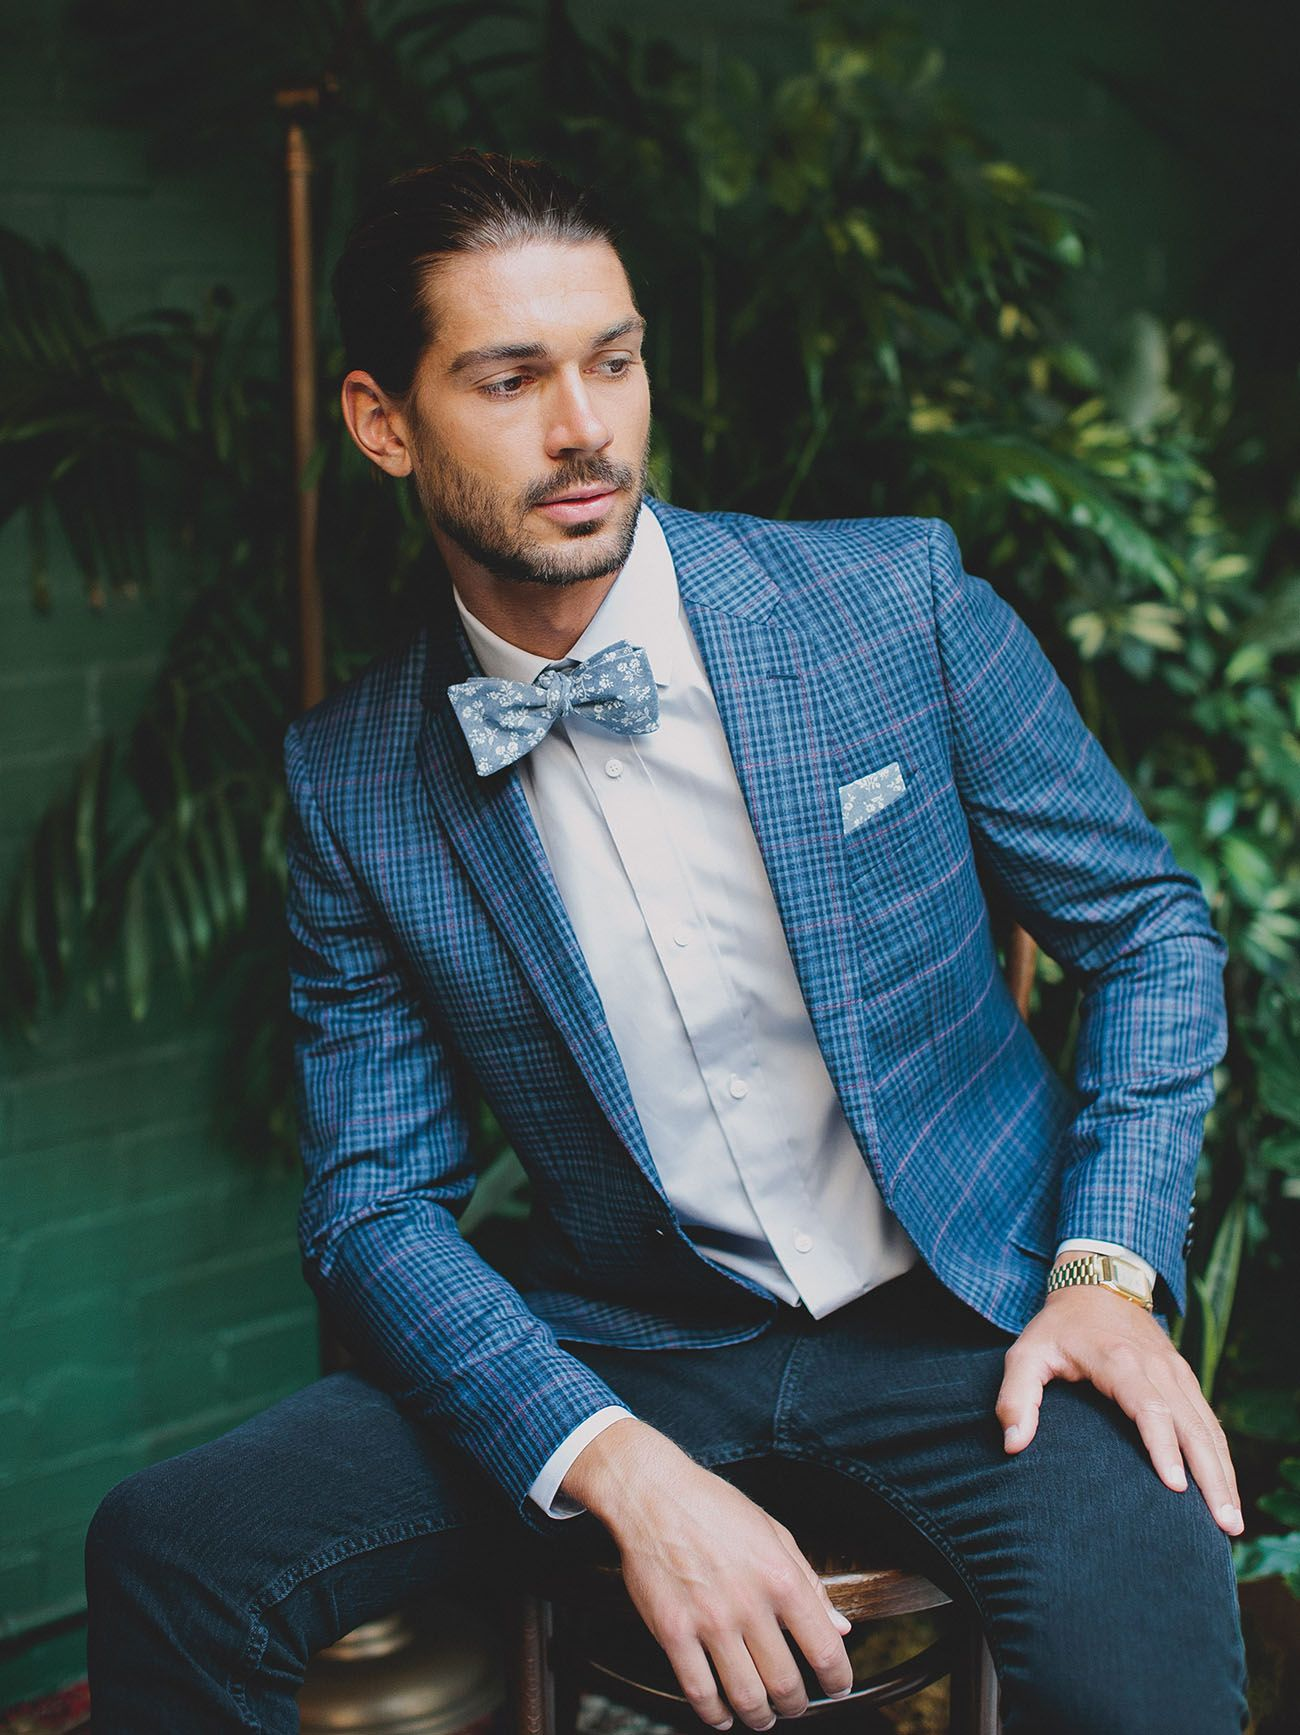 Introducing The GWS x Neck & Tie Company Tie Collection | Hipster ...